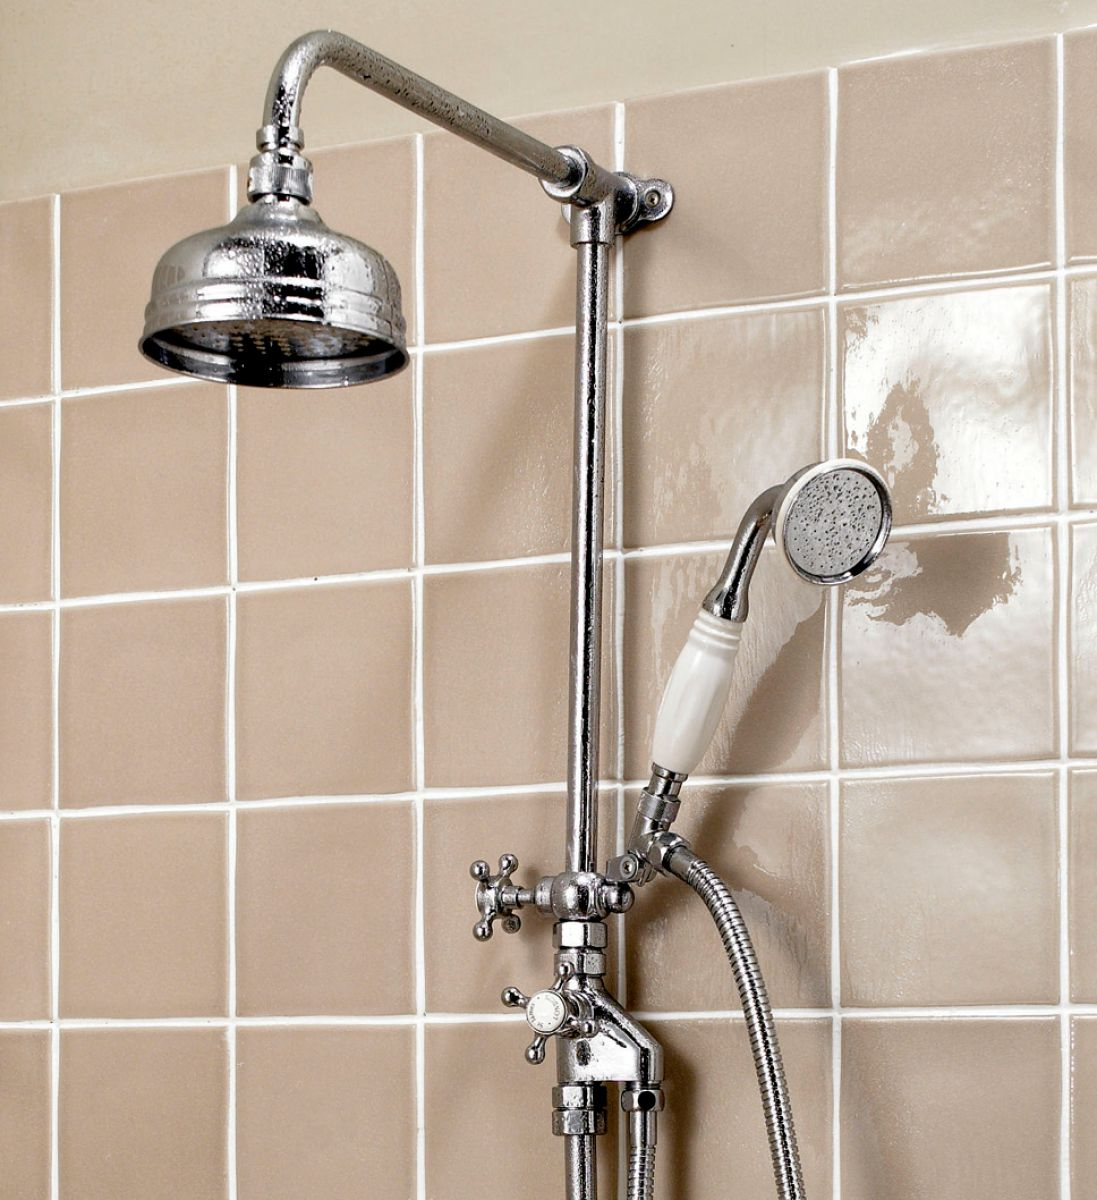 Exceptionnel Imperial Victorian Exposed Shower Valve With 5 Inch Flowmaster Shower Head  ...